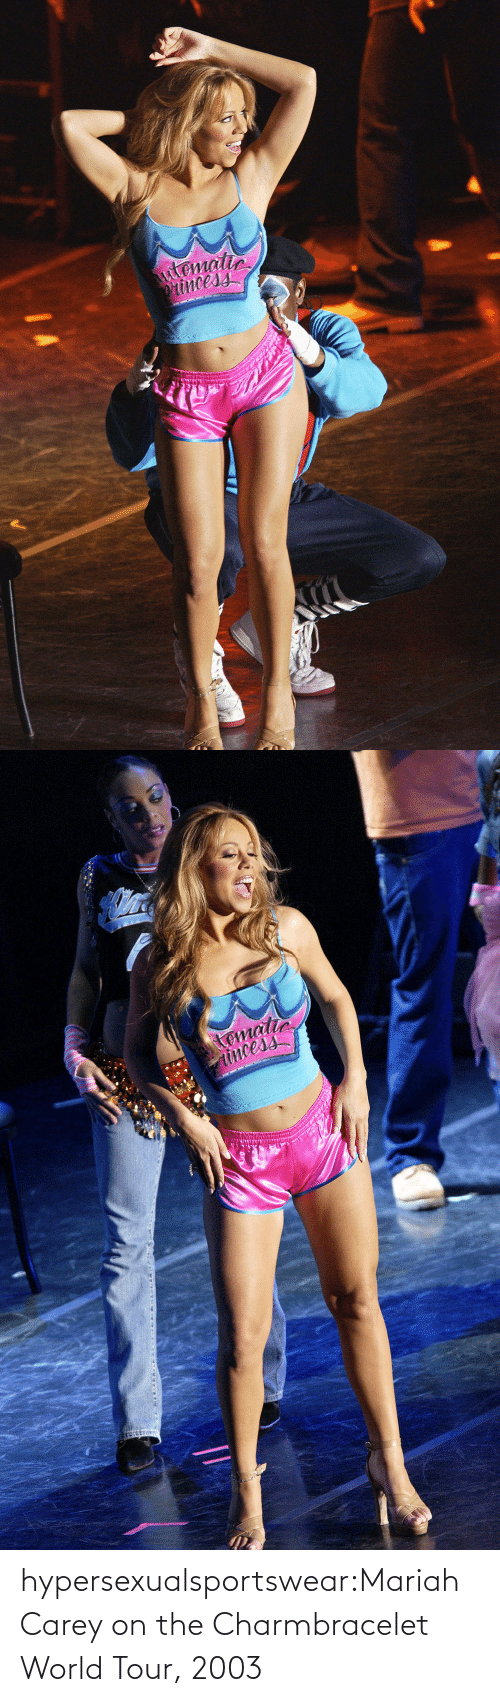 Carey: hypersexualsportswear:Mariah Carey on the Charmbracelet World Tour, 2003